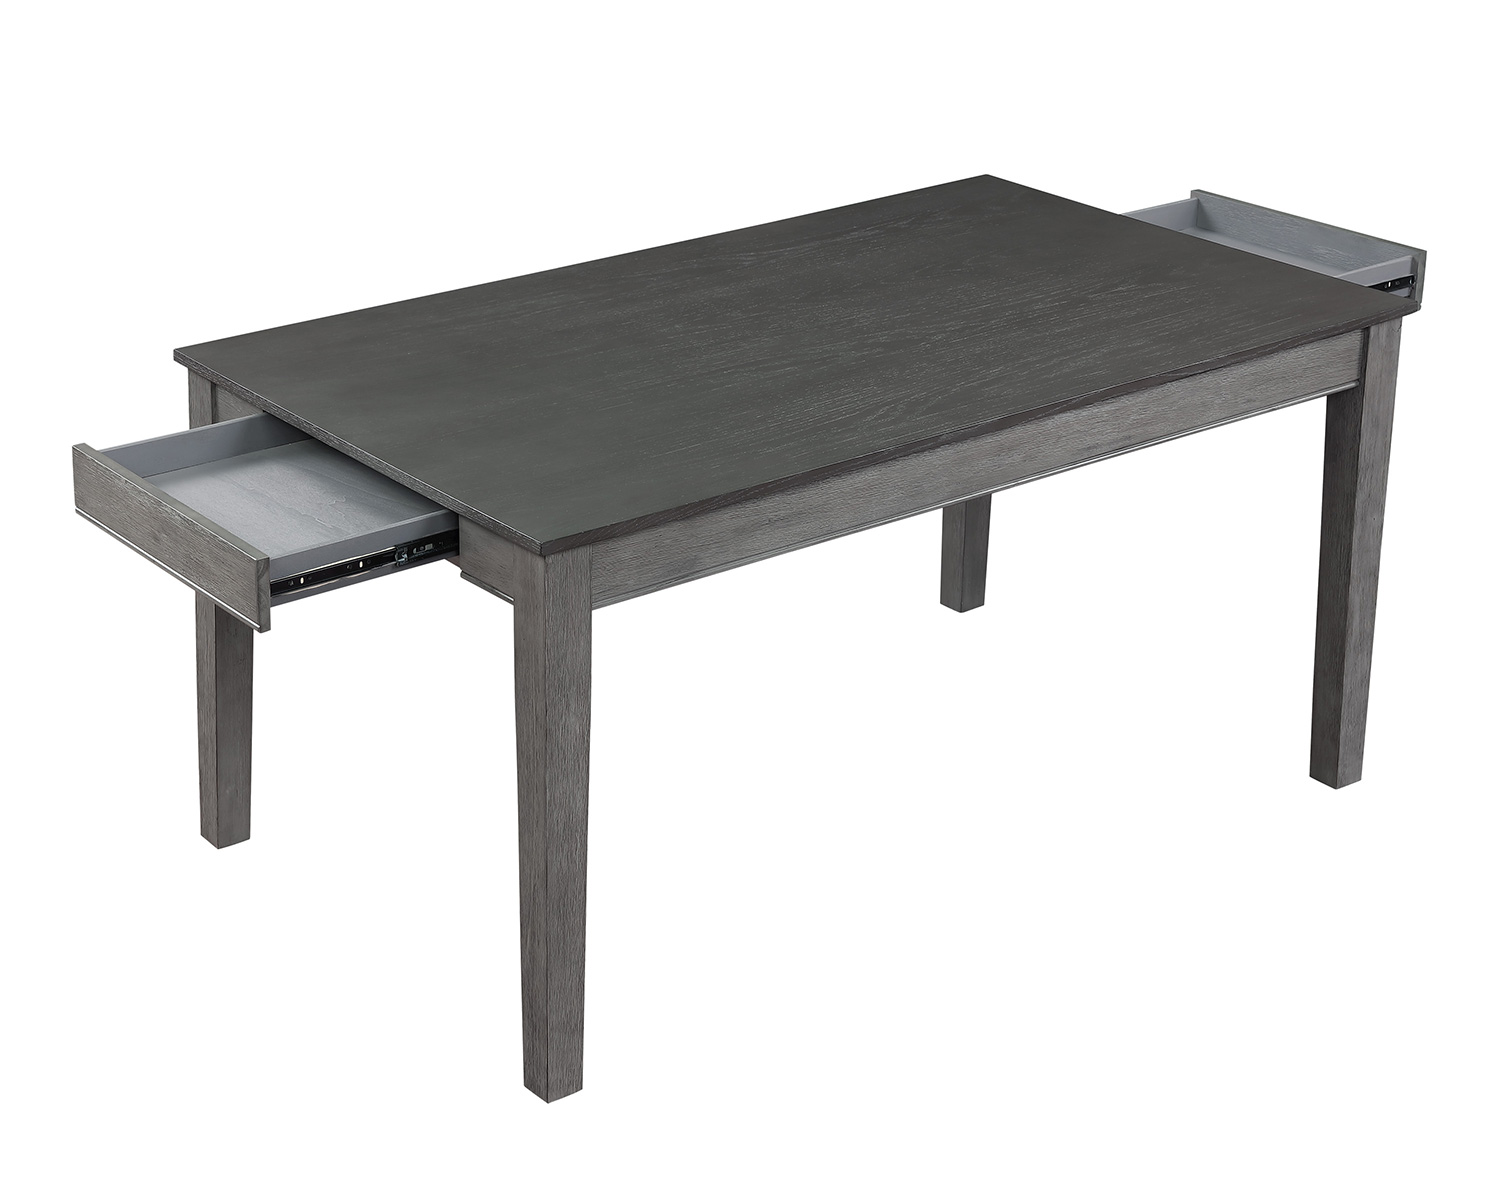 Homelegance Armhurst Dining Table - Gray